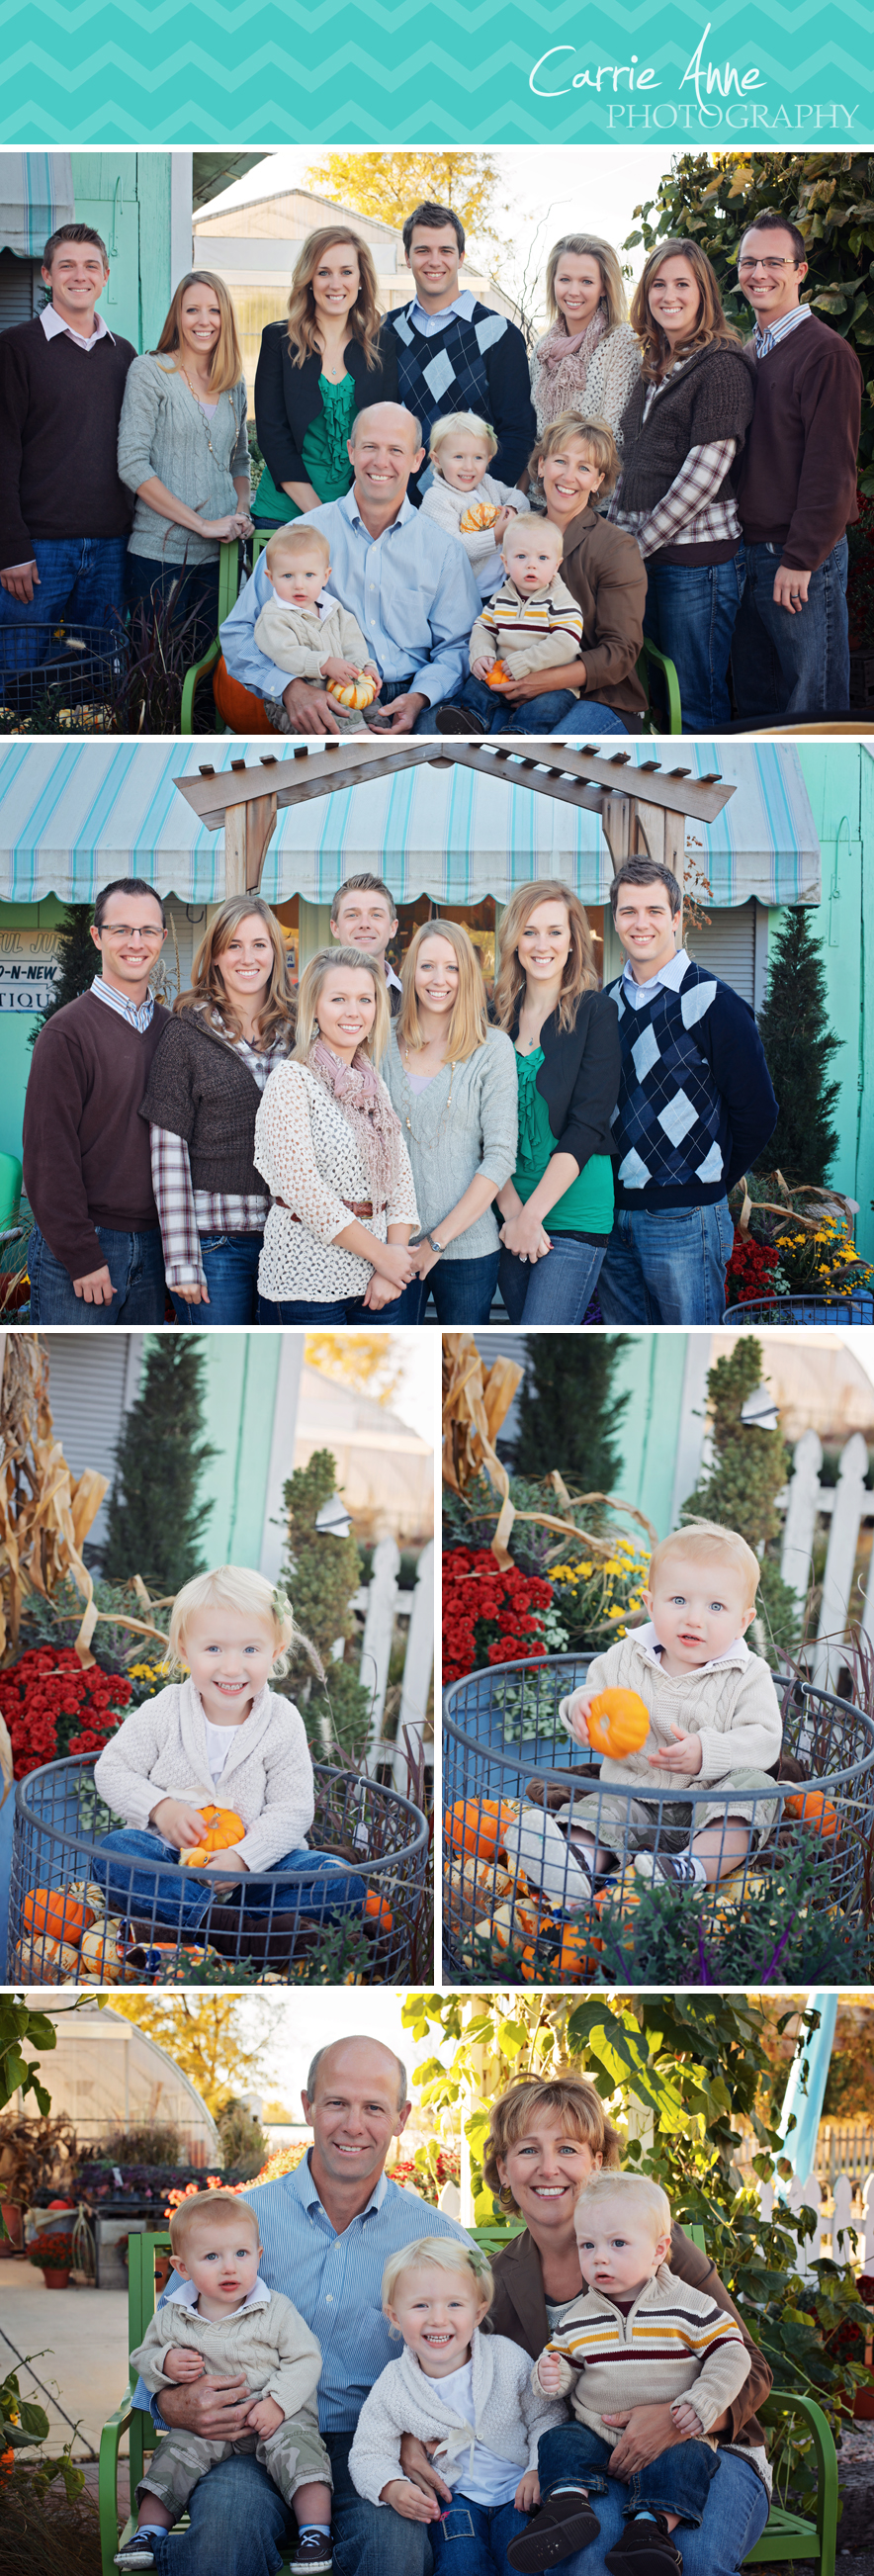 Extended Family Photography in Grand Rapids, Michigan Carrie Anne Photography